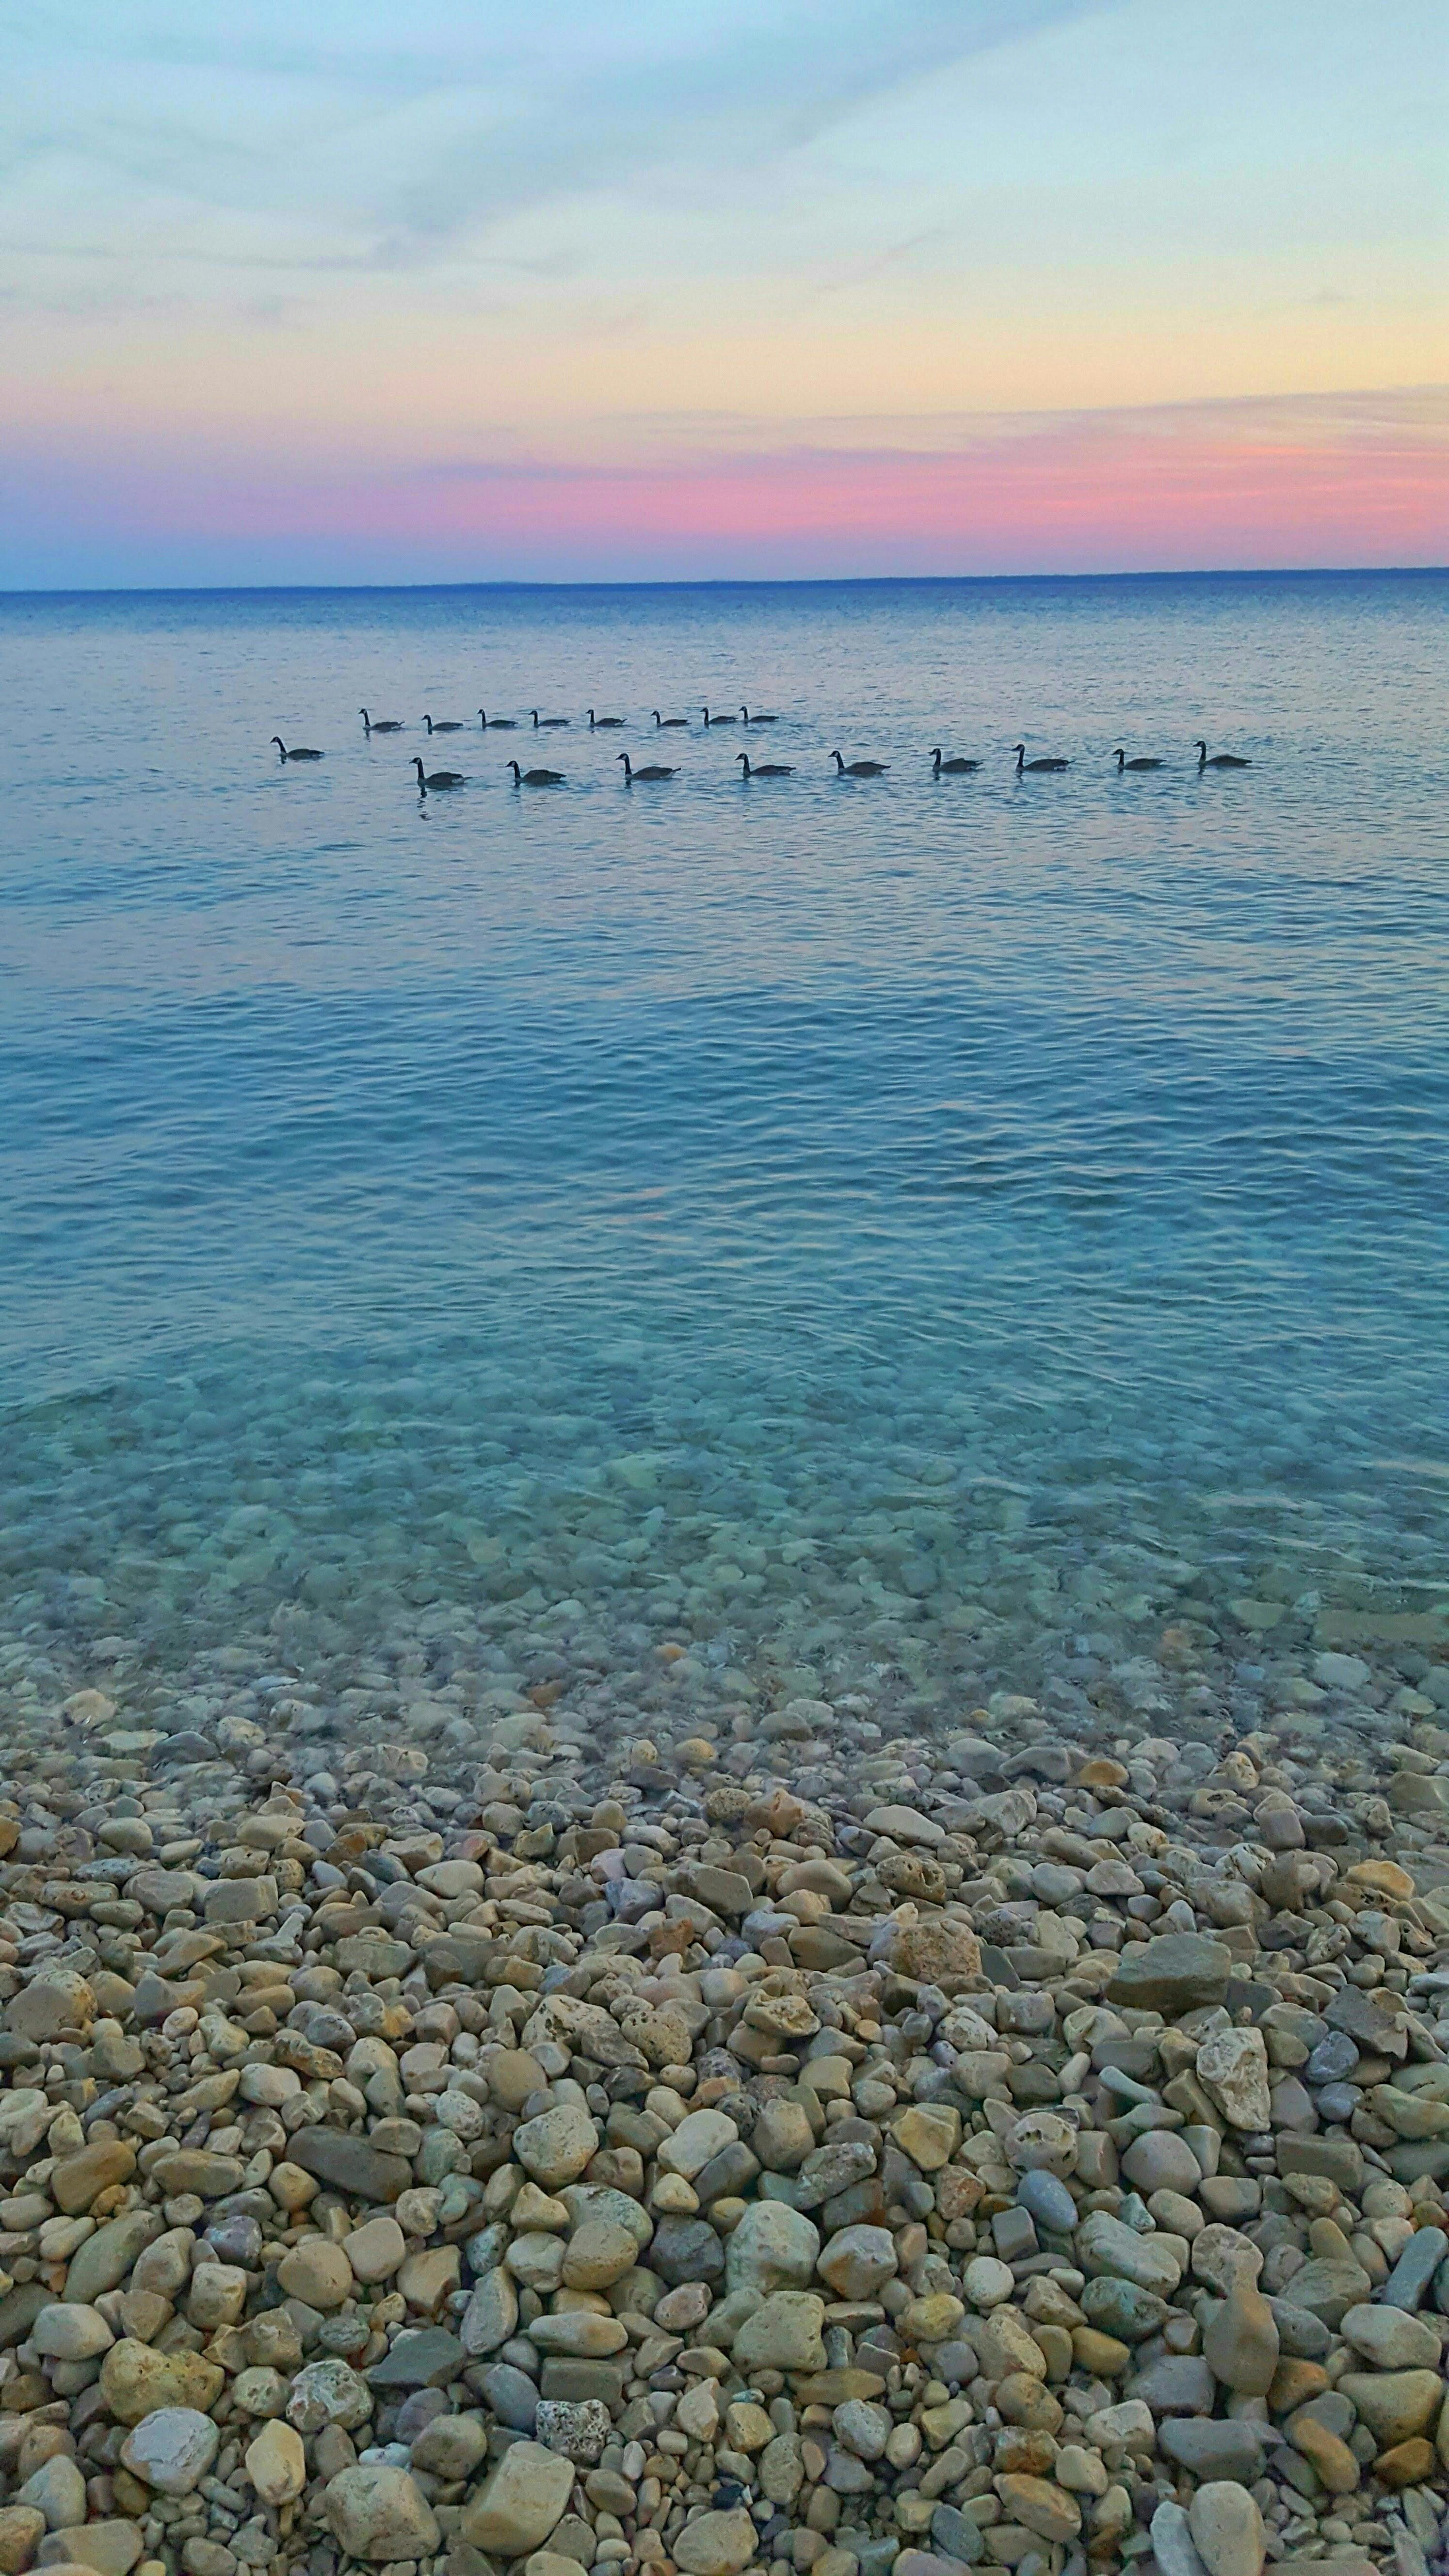 Geese in Lake Huron at sunset, Mackinac Island, Michigan